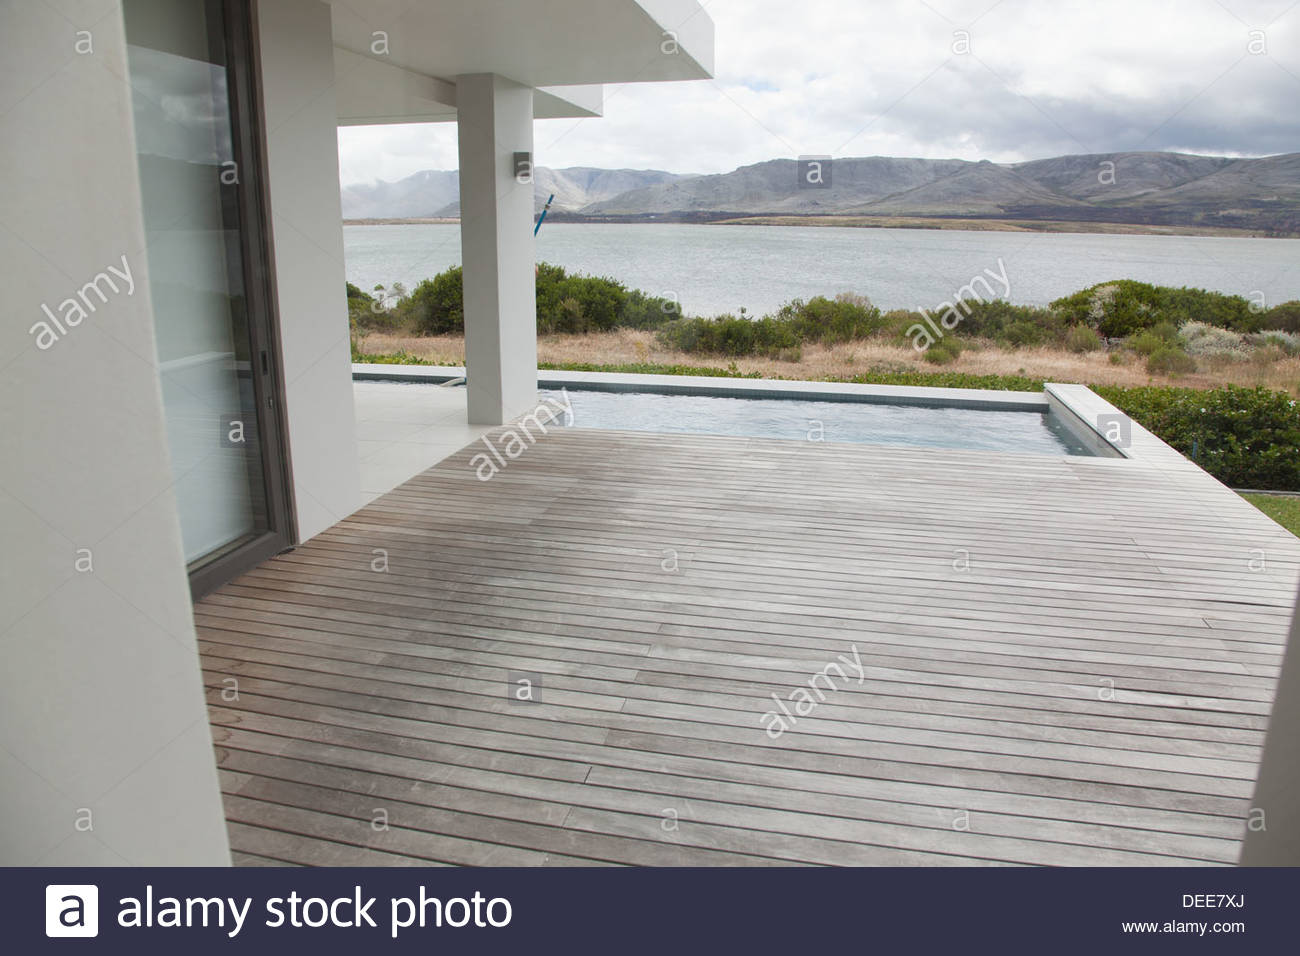 Deck and pool of modern house - Stock Image